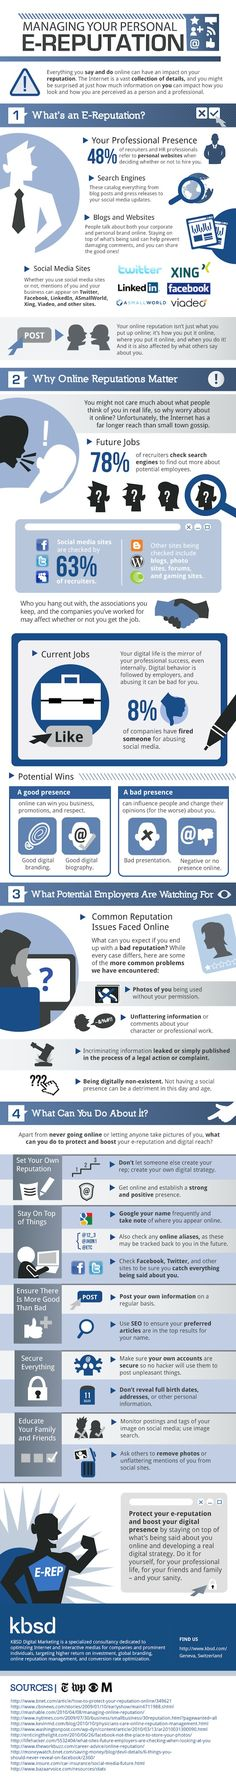 Managing your e-reputation - infographic